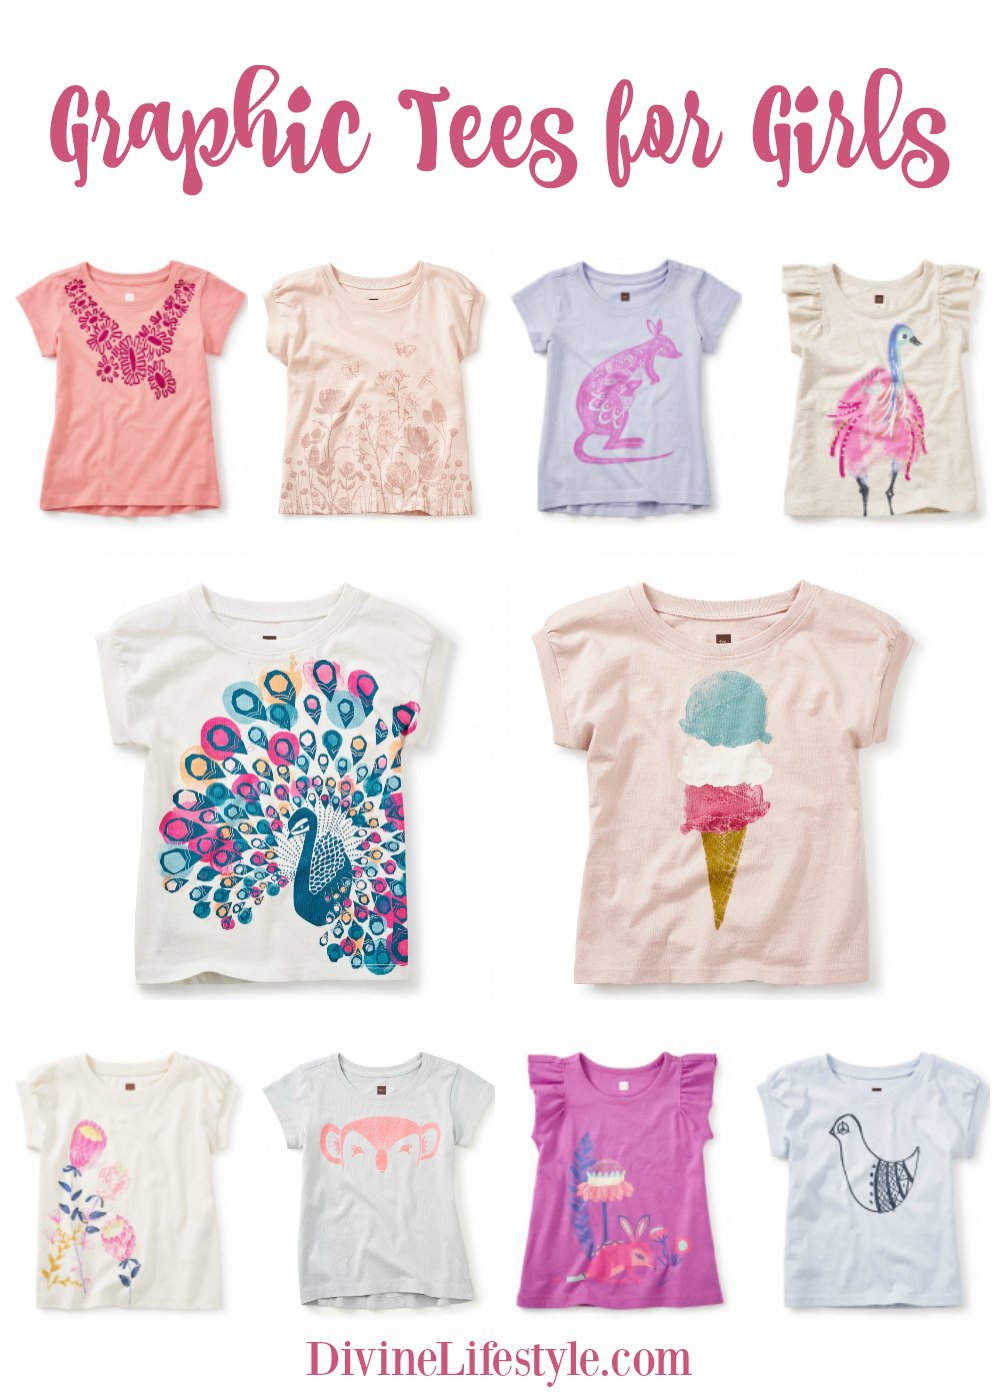 861f67e8ed Sweet Graphic Tees for Girls from Tea Collection Kids Fashion